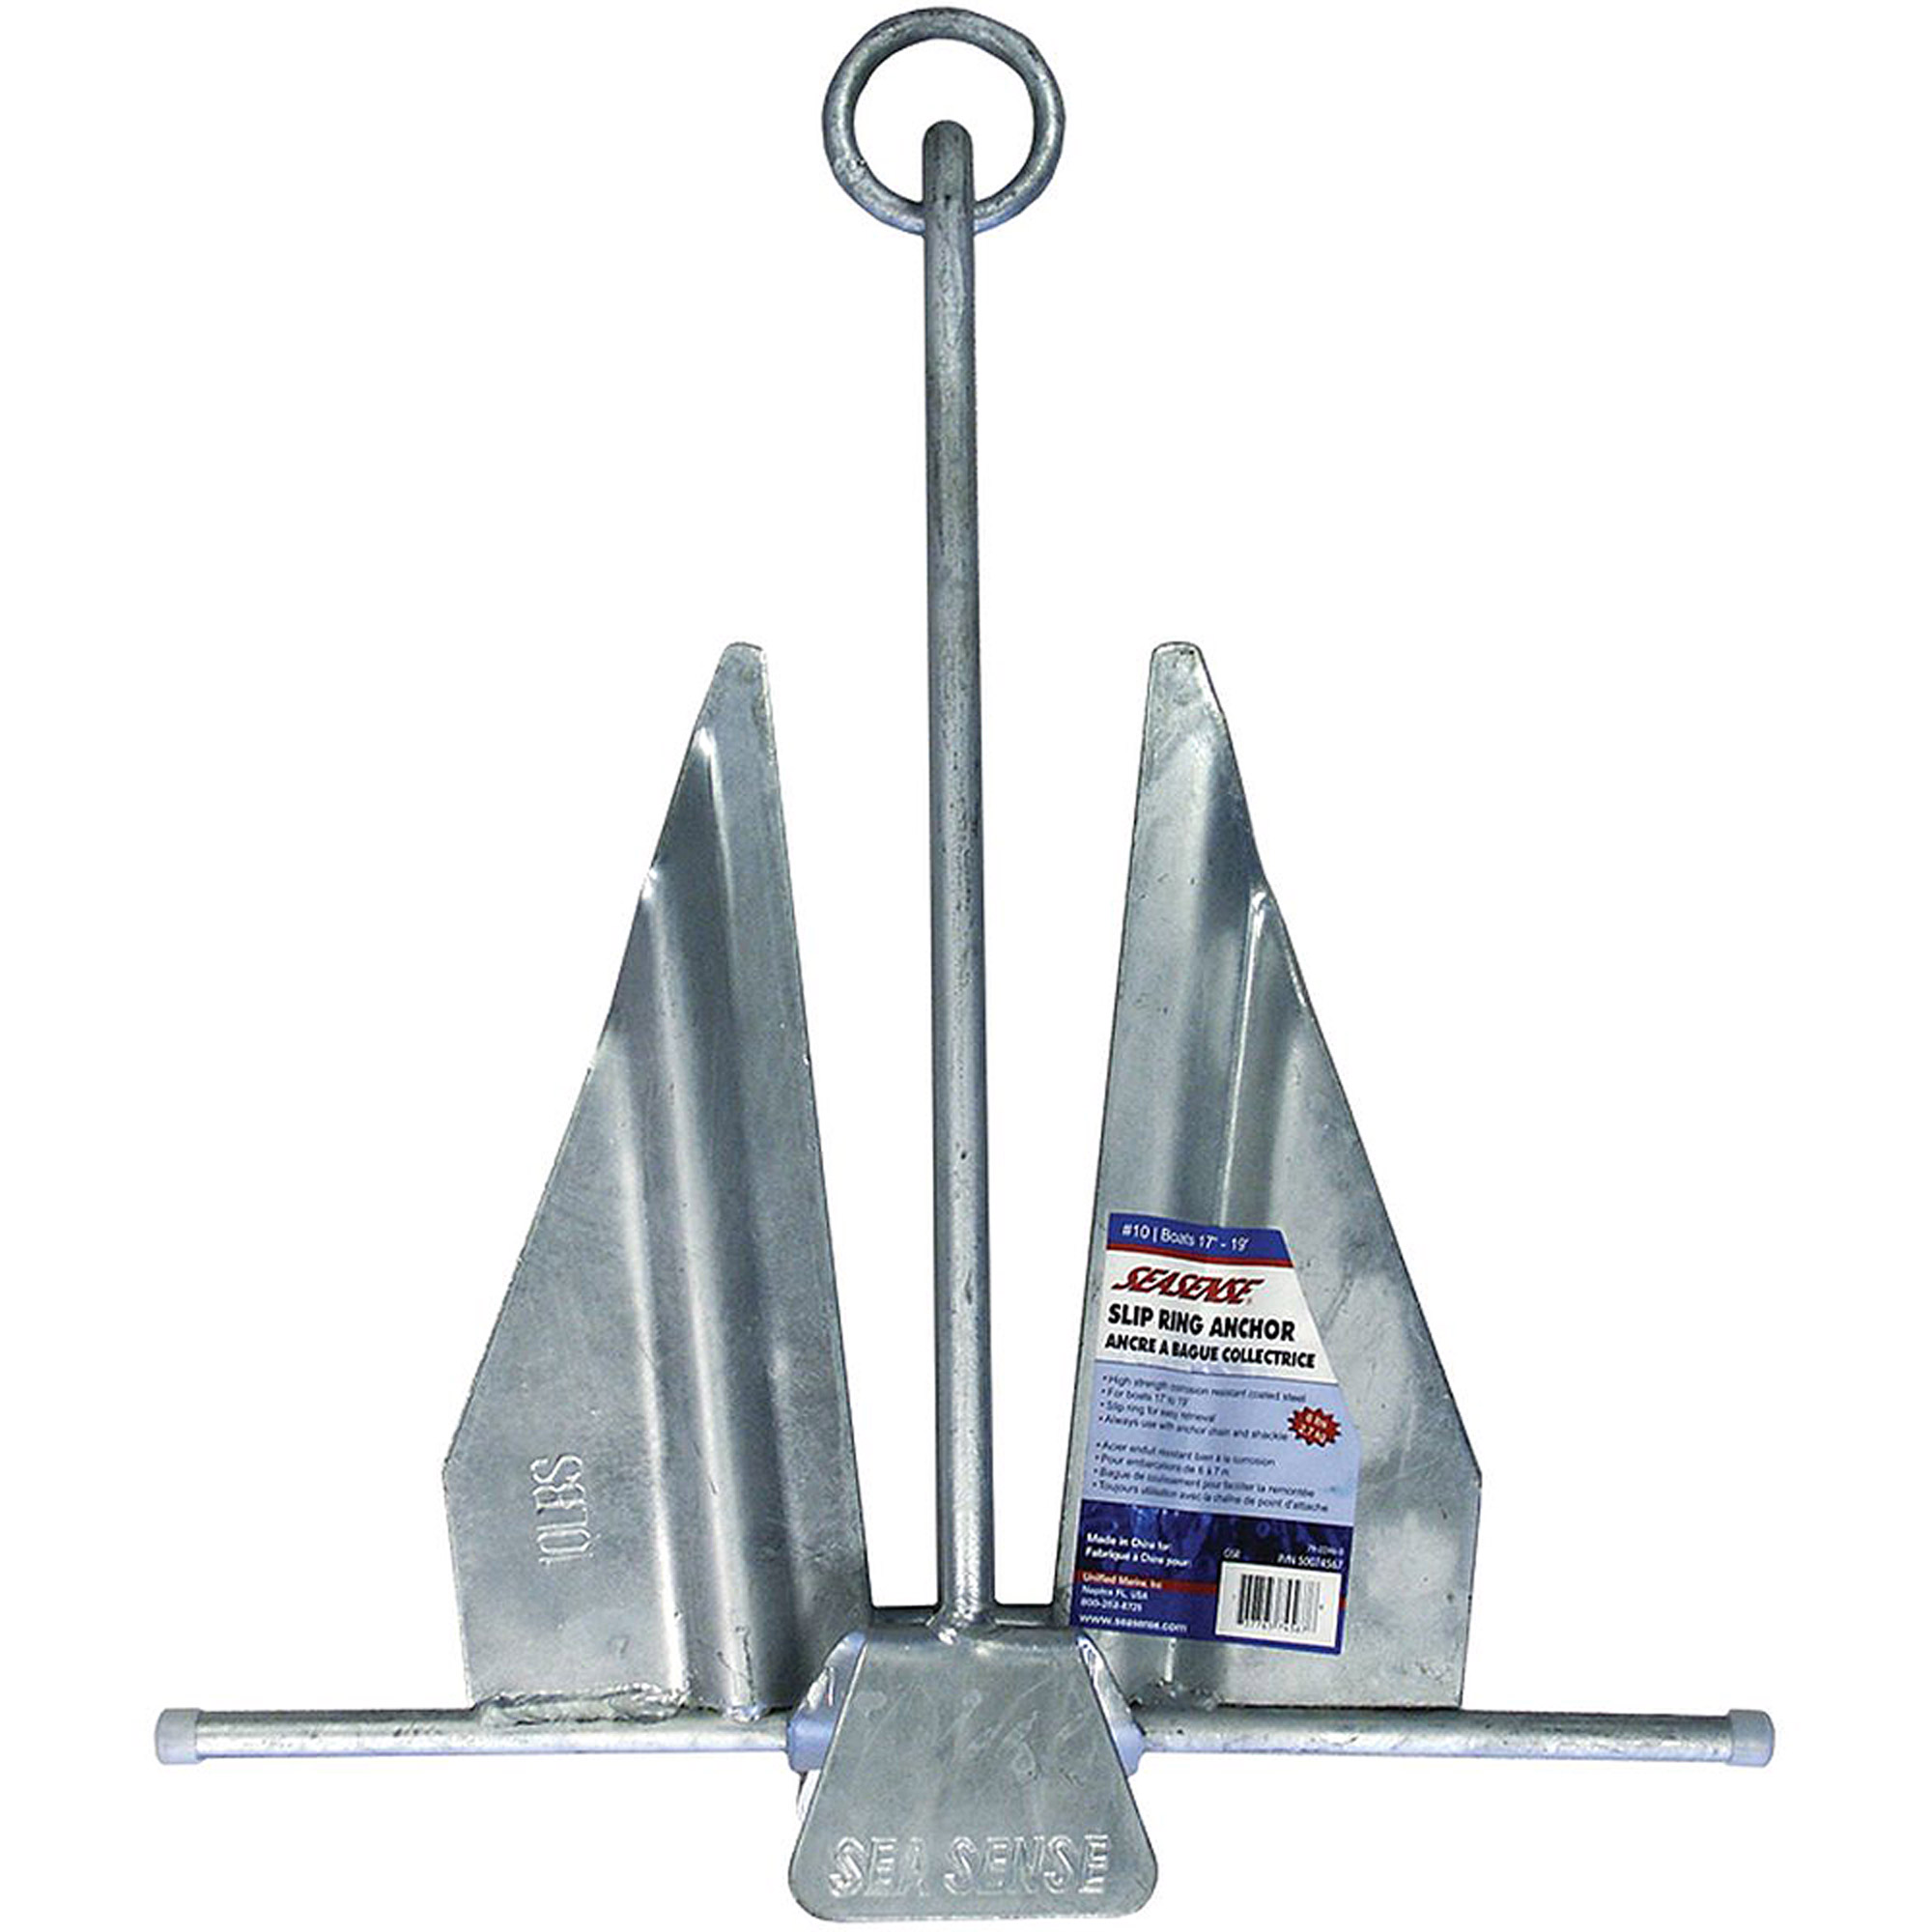 SeaSense #7 Galvanized Slip-Ring Economy Anchor